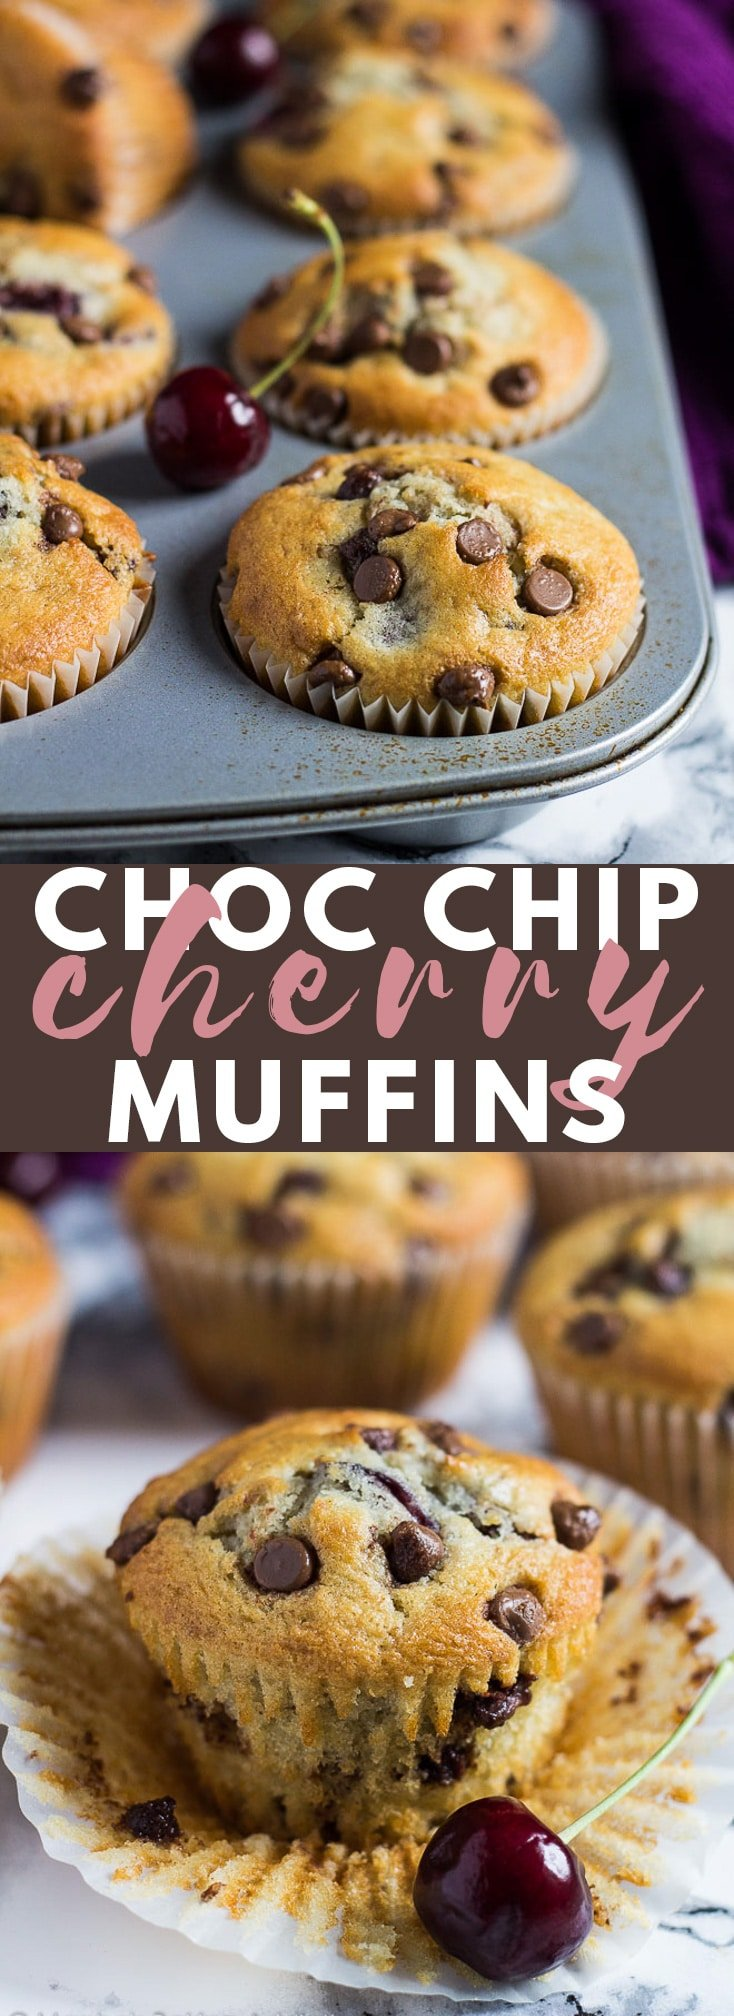 Chocolate Chip Cherry Muffins - Deliciously moist vanilla muffins loaded with chocolate chips and chopped cherries. A perfect on-the-go breakfast or snack! #chocolatechipmuffins #cherrymuffins #cherryrecipes #muffinrecipes